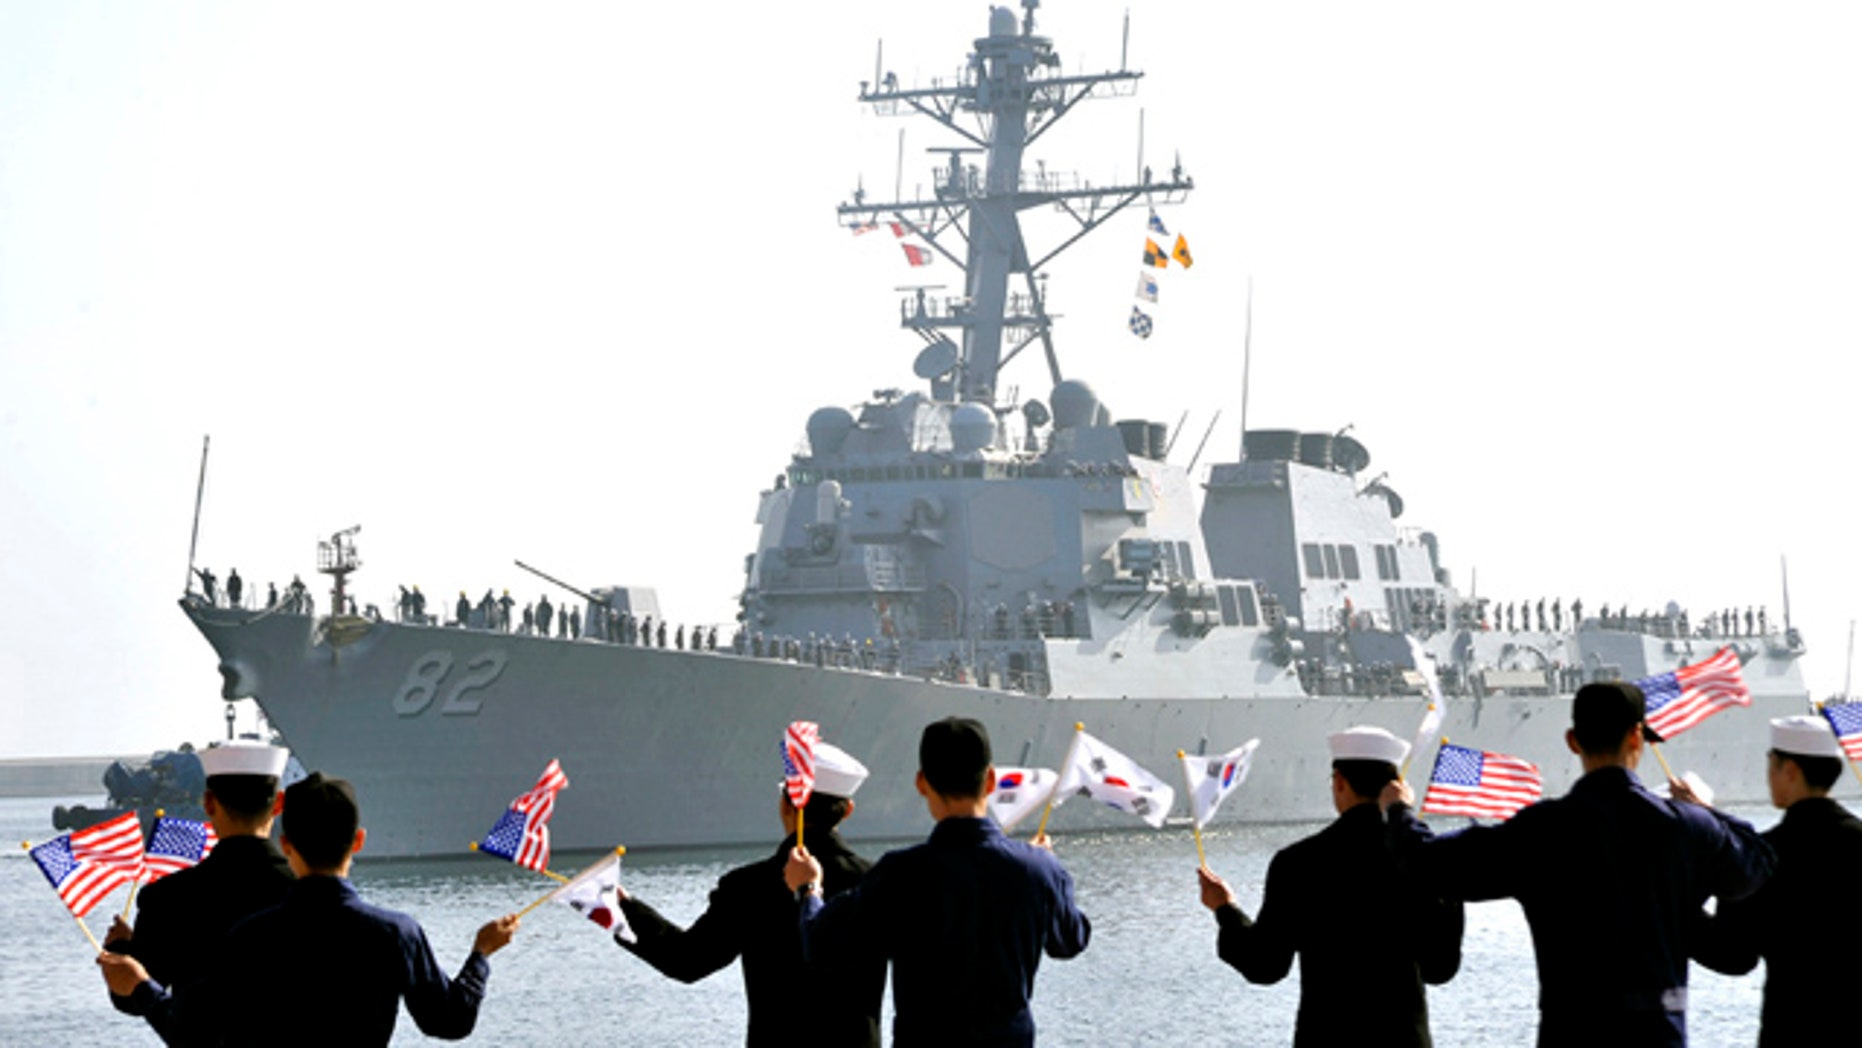 March 9, 2013: The guided-missile destroyers USS Lassen (DDG 82), arrives to participate in the annual joint military exercises, dubbed Key Resolve, between the South Korean and United States.